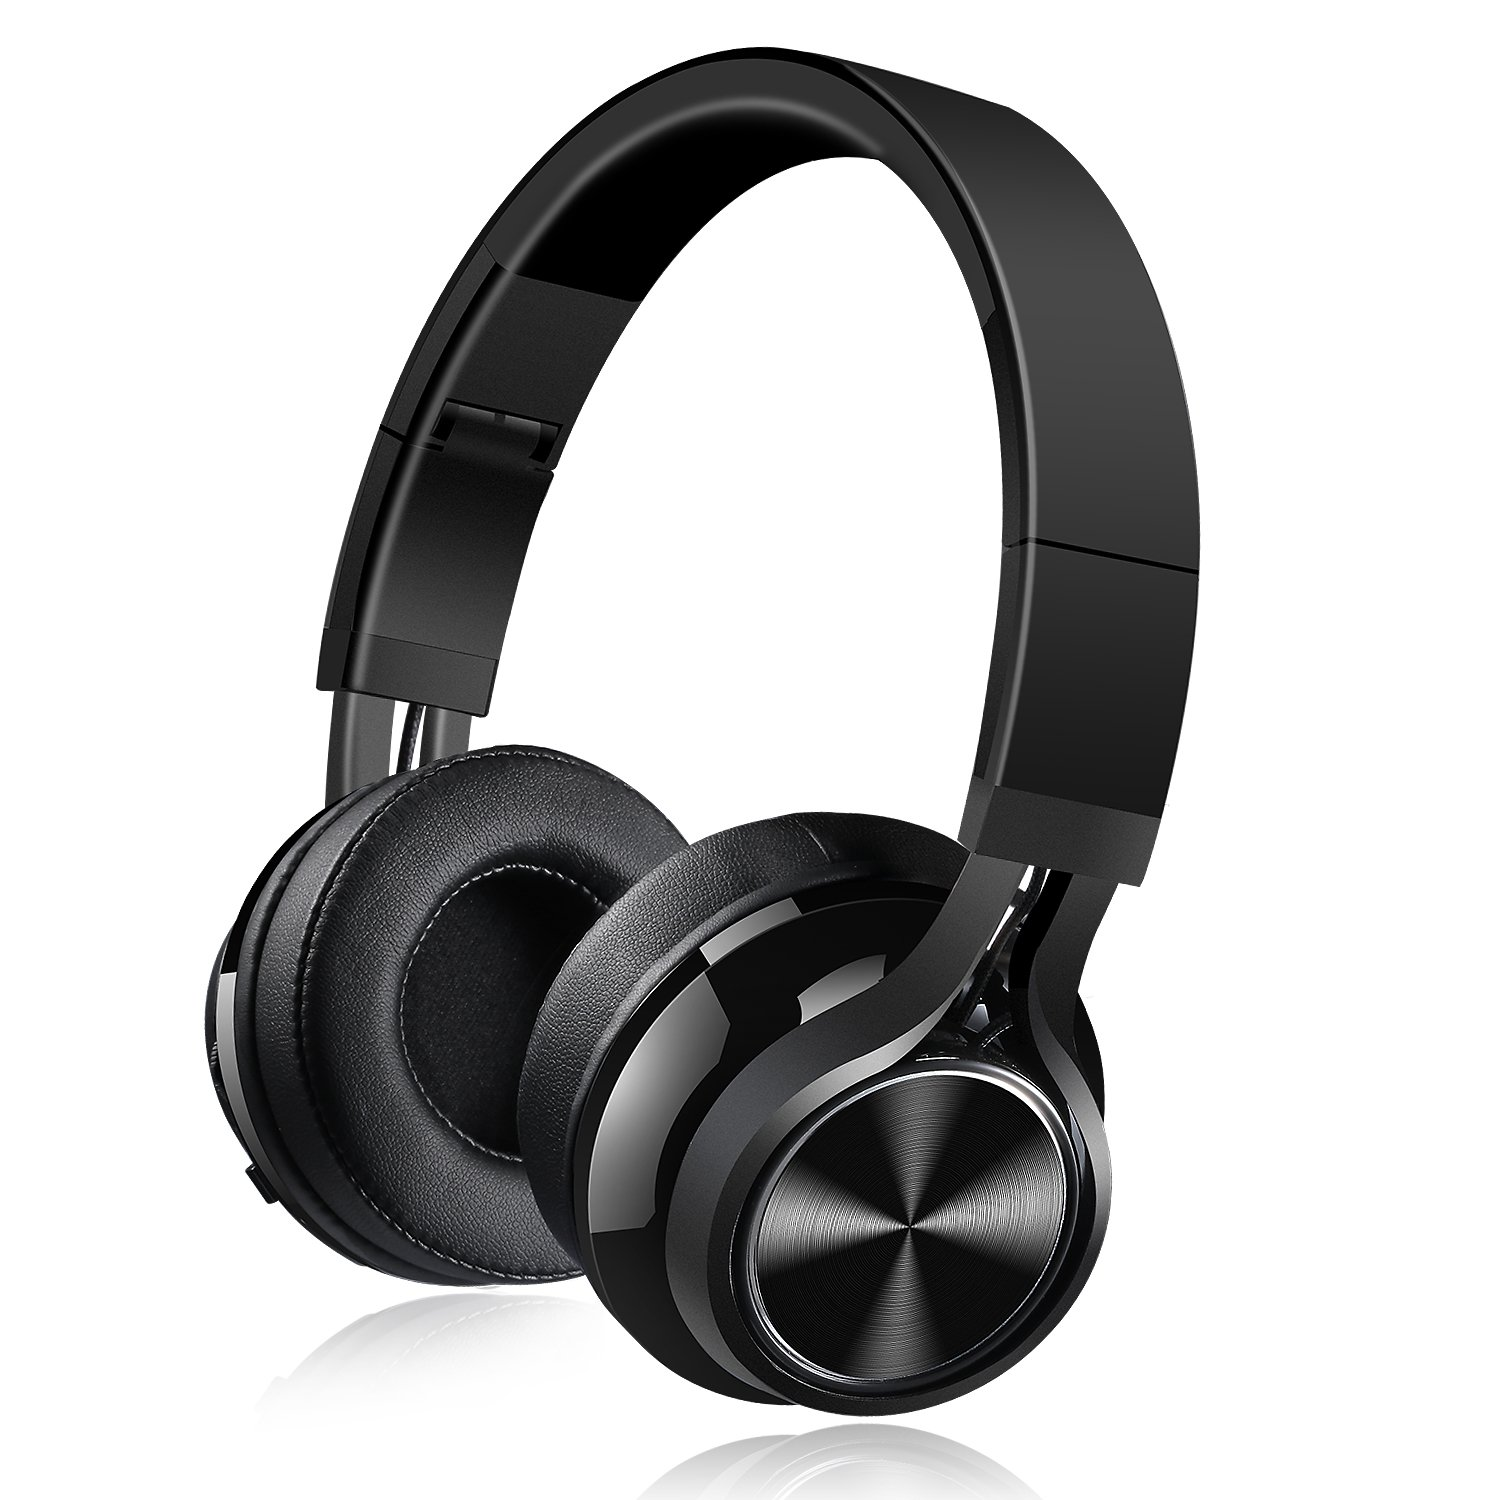 Bluetooth Headphones, Over Ear Bluetooth Headphones, Hi-Fi Stereo Wired and Wireless Headphones, Folding Lightweight Wireless Headset with Built-in Mic for Cell Phone/TV/PC